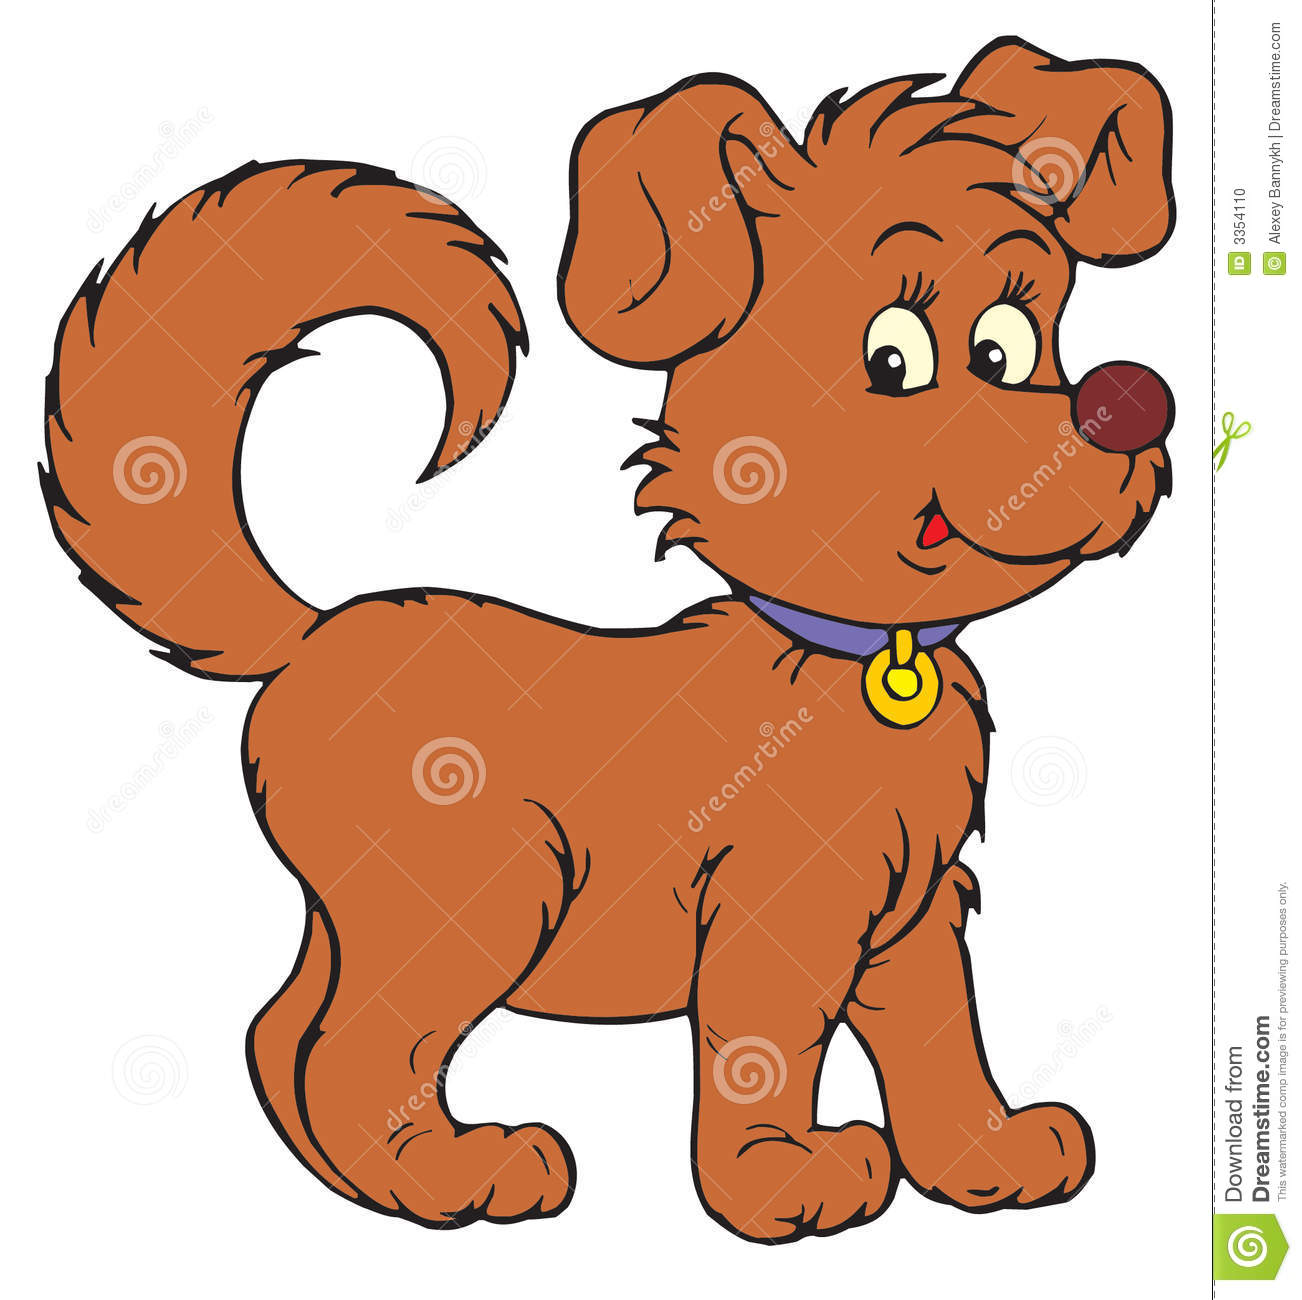 Clip Art Of Dogs - ClipartFest-Clip art of dogs - ClipartFest-2